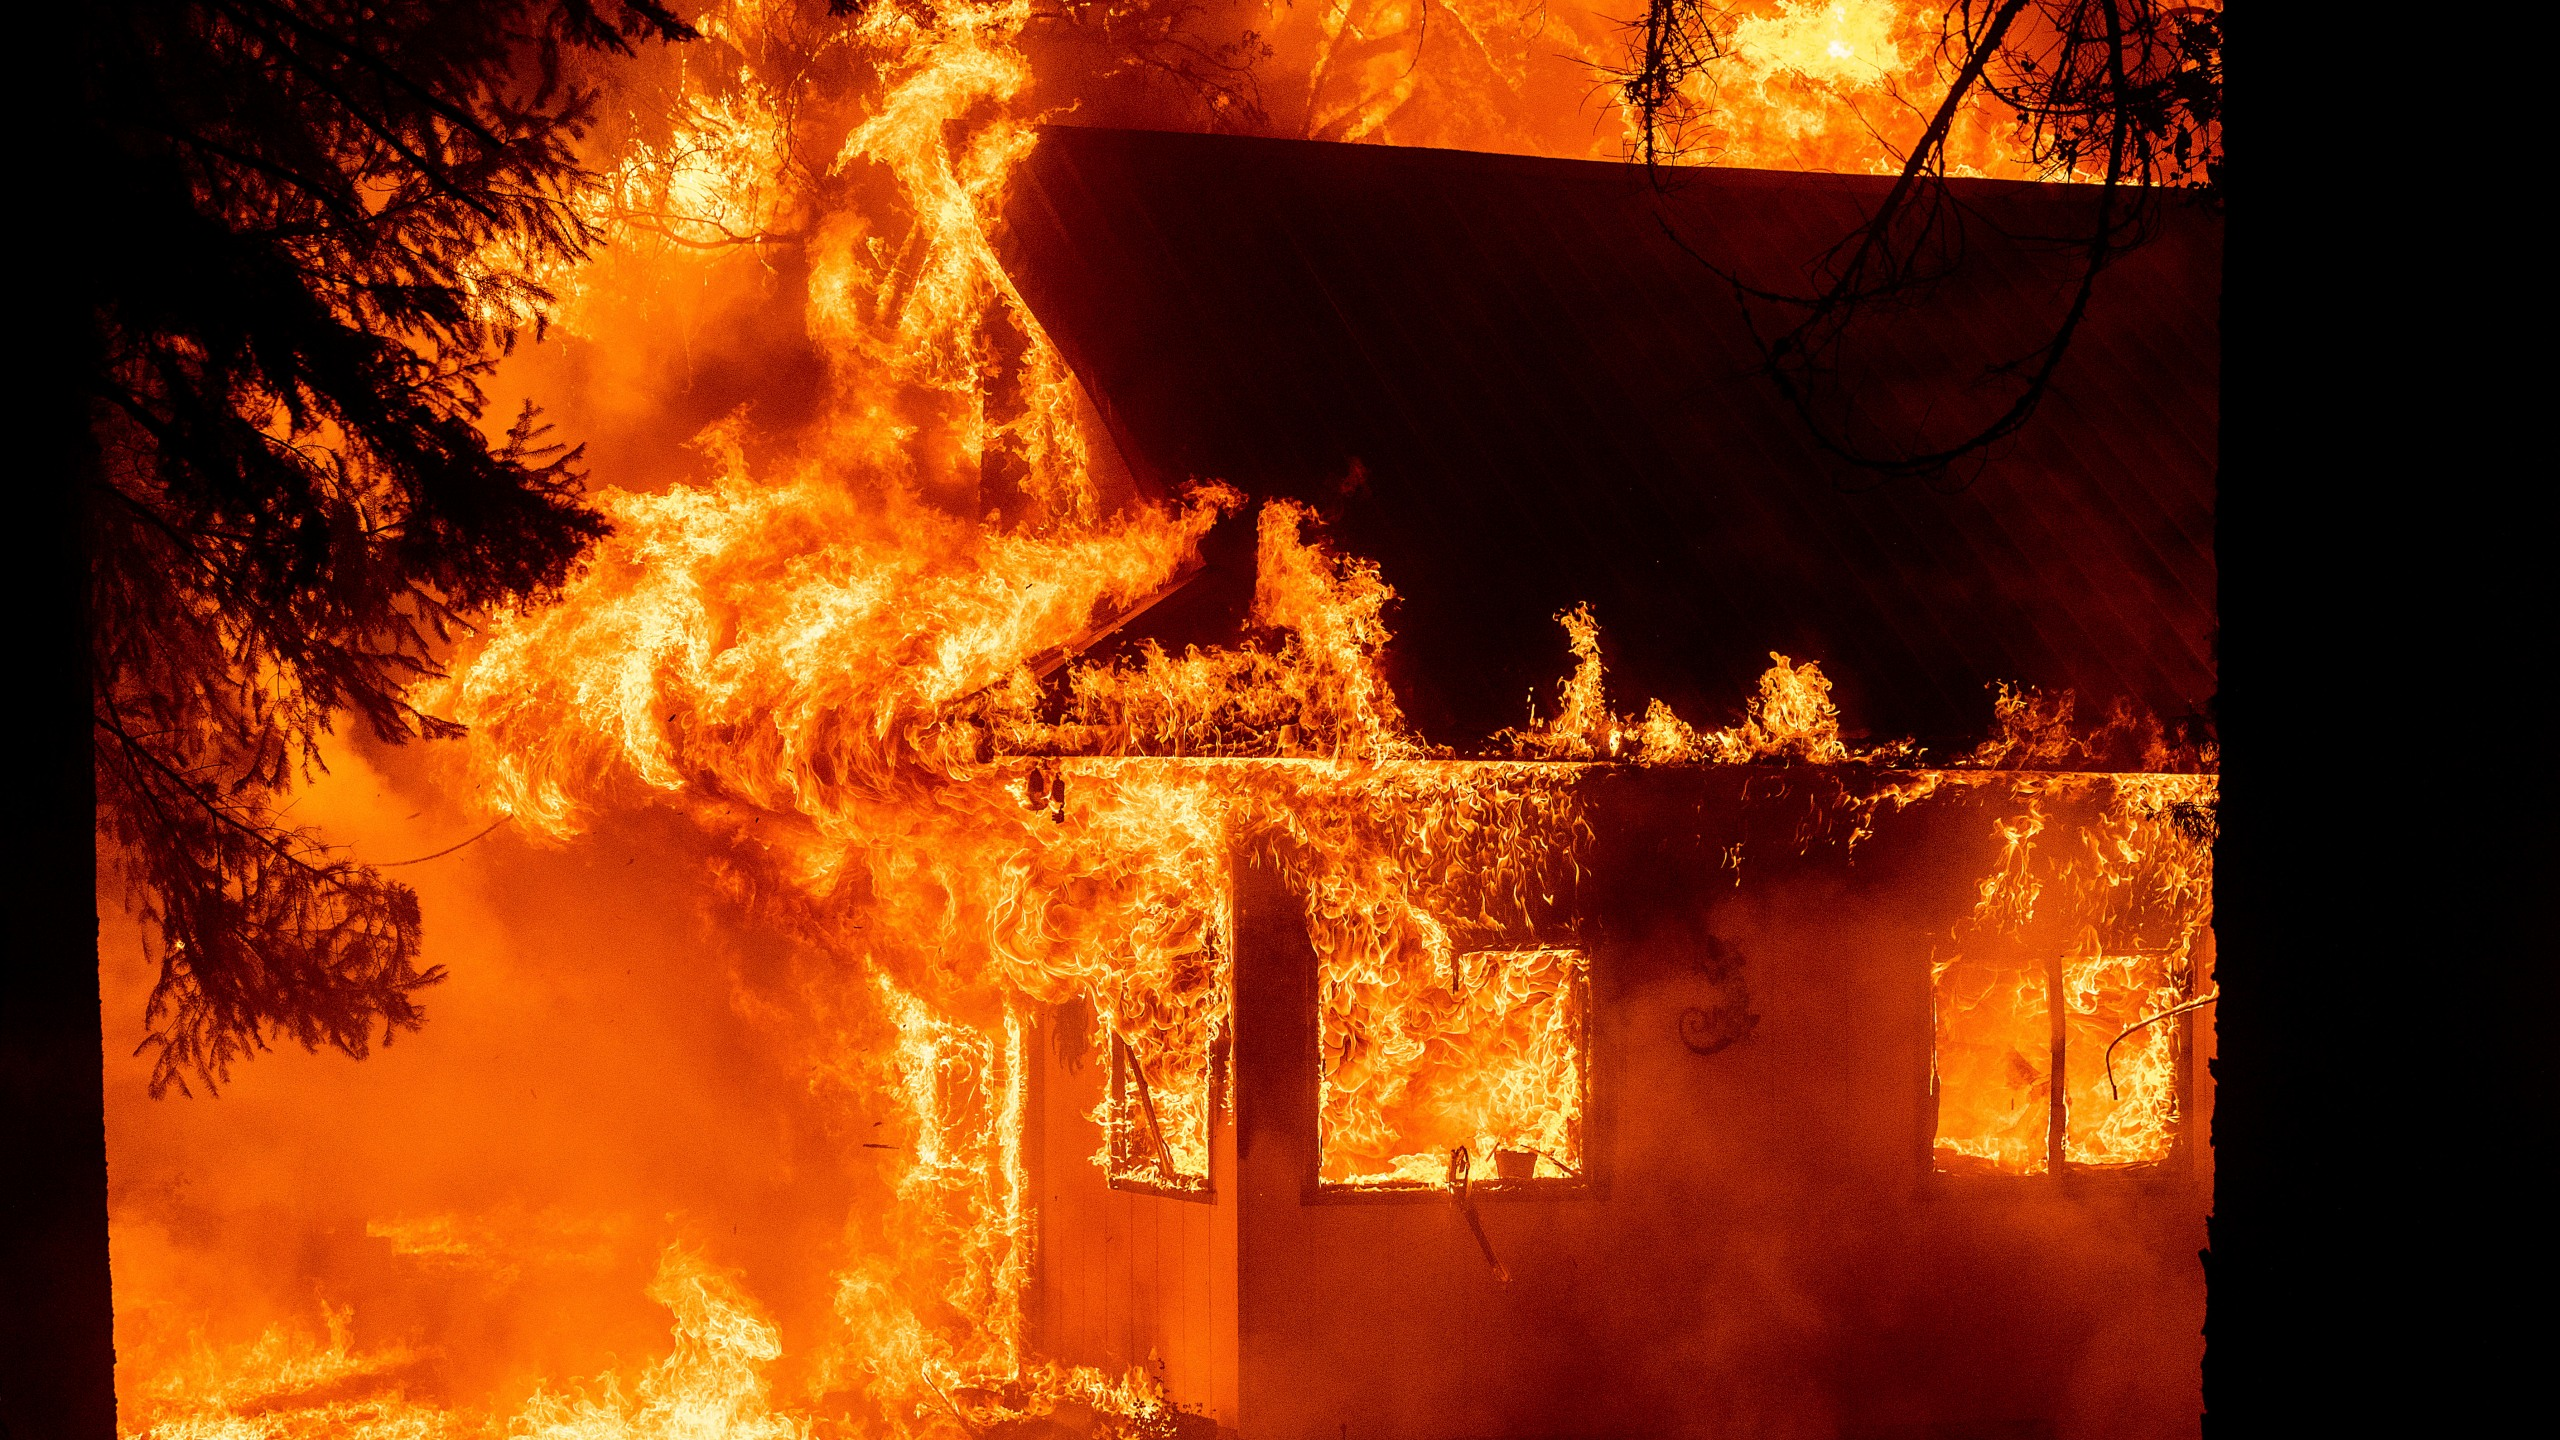 California's largest fire burns homes as blazes torch West